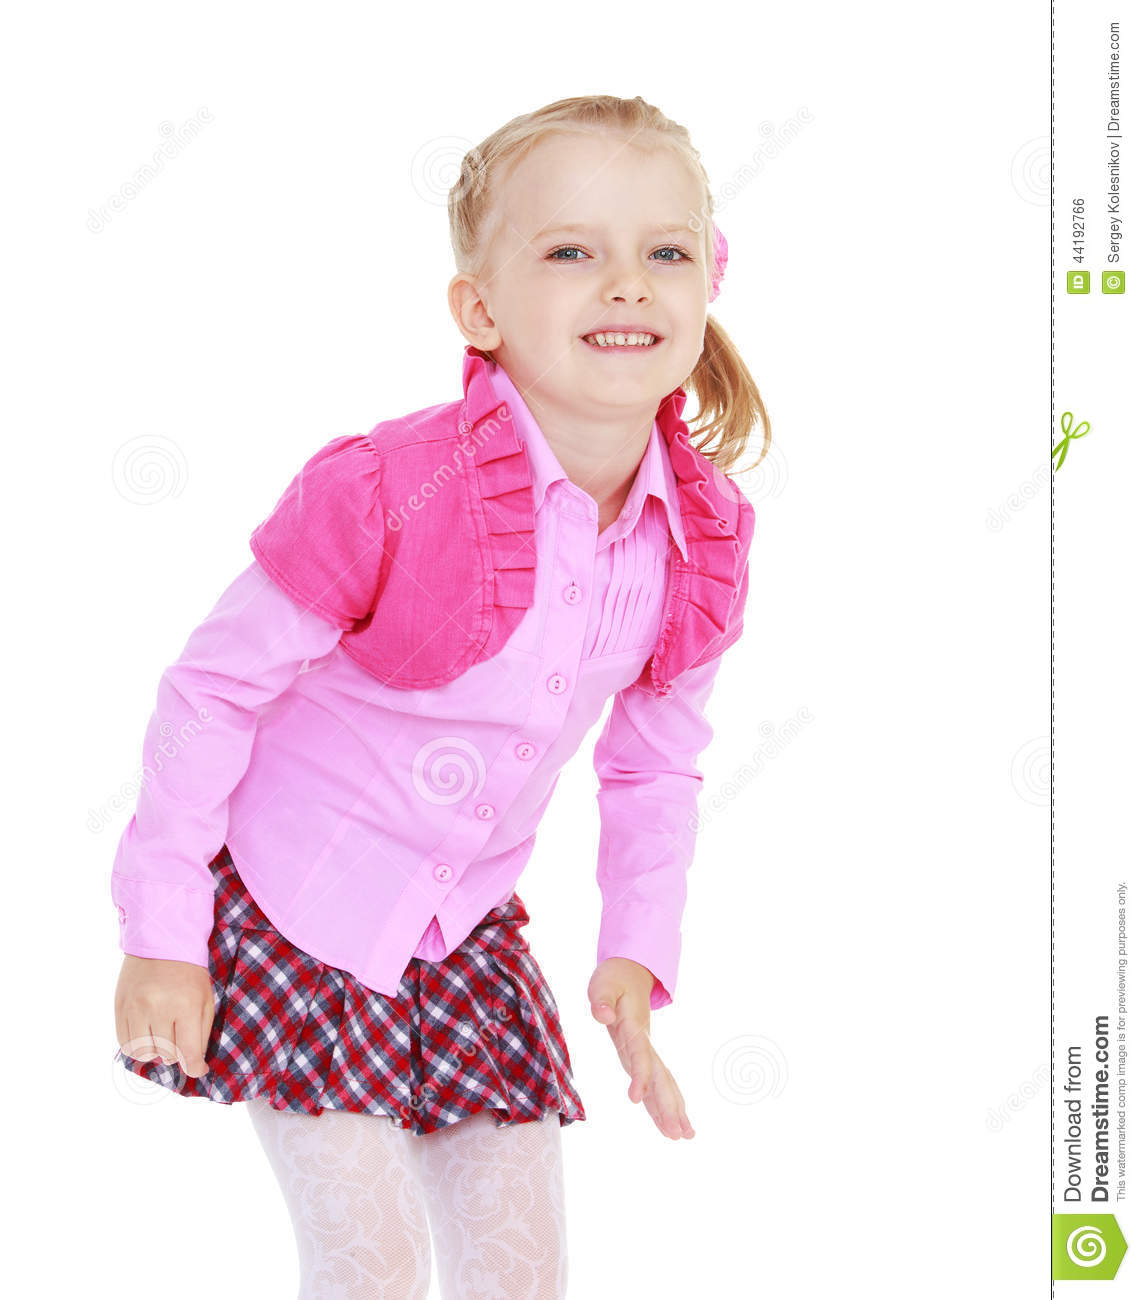 Smiling charming young girl on a white background stock photo image 44192766 - Charming teenage girls image ...